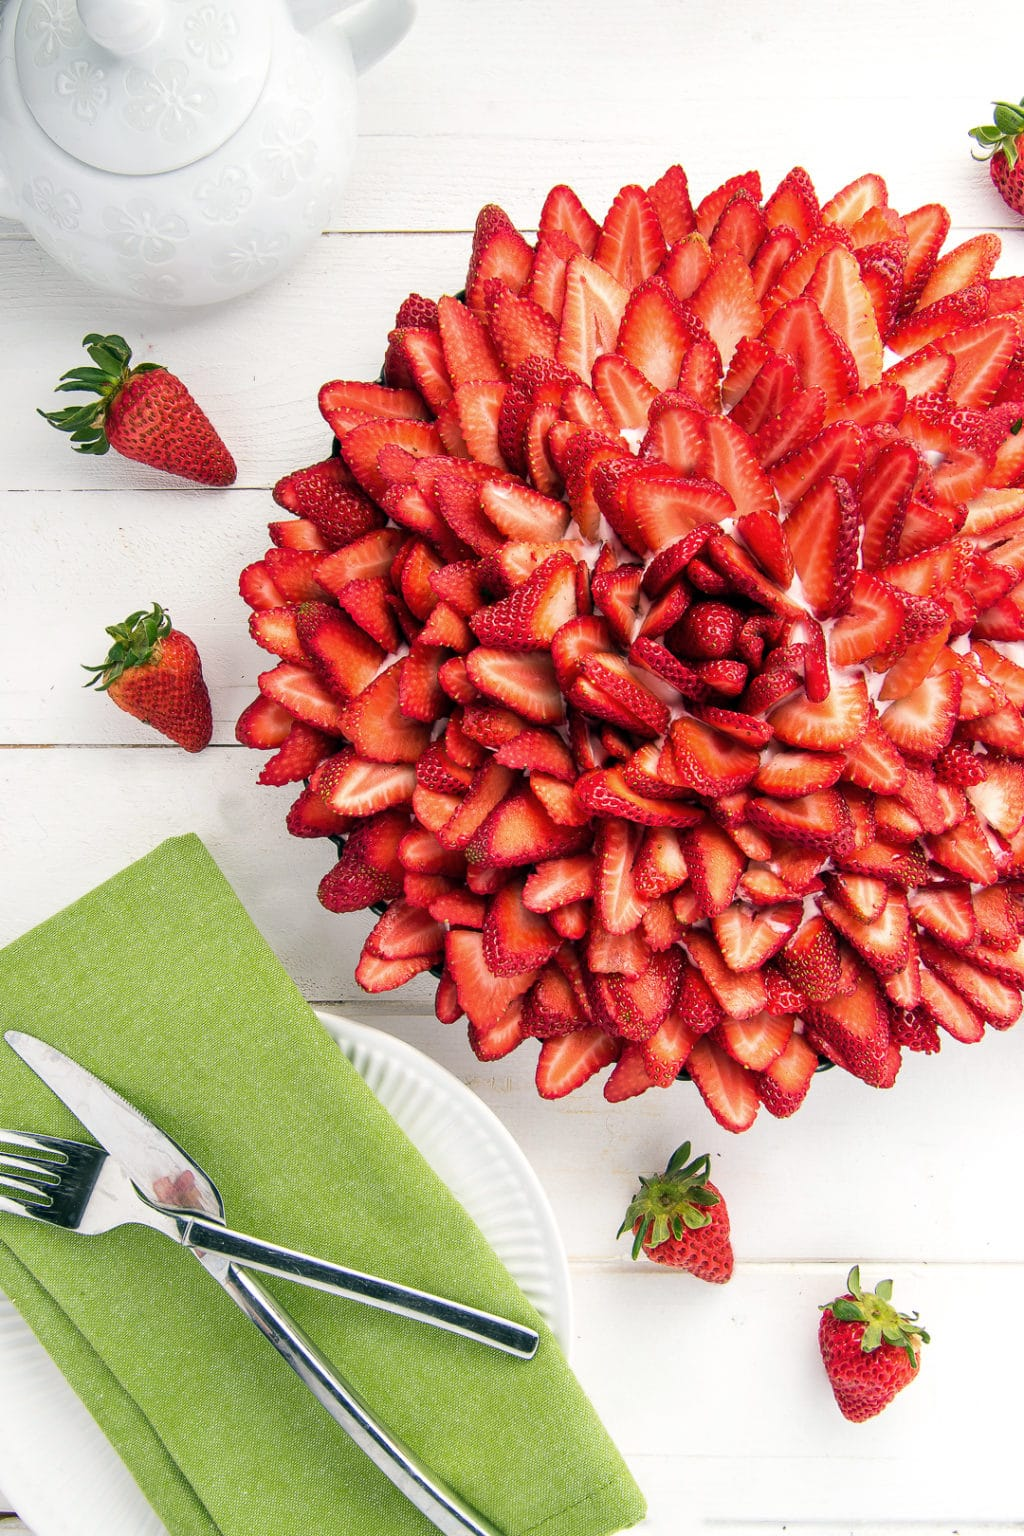 A strawberry cream pie topped with sliced strawberries. The strawberries are arranged in a rose pattern.